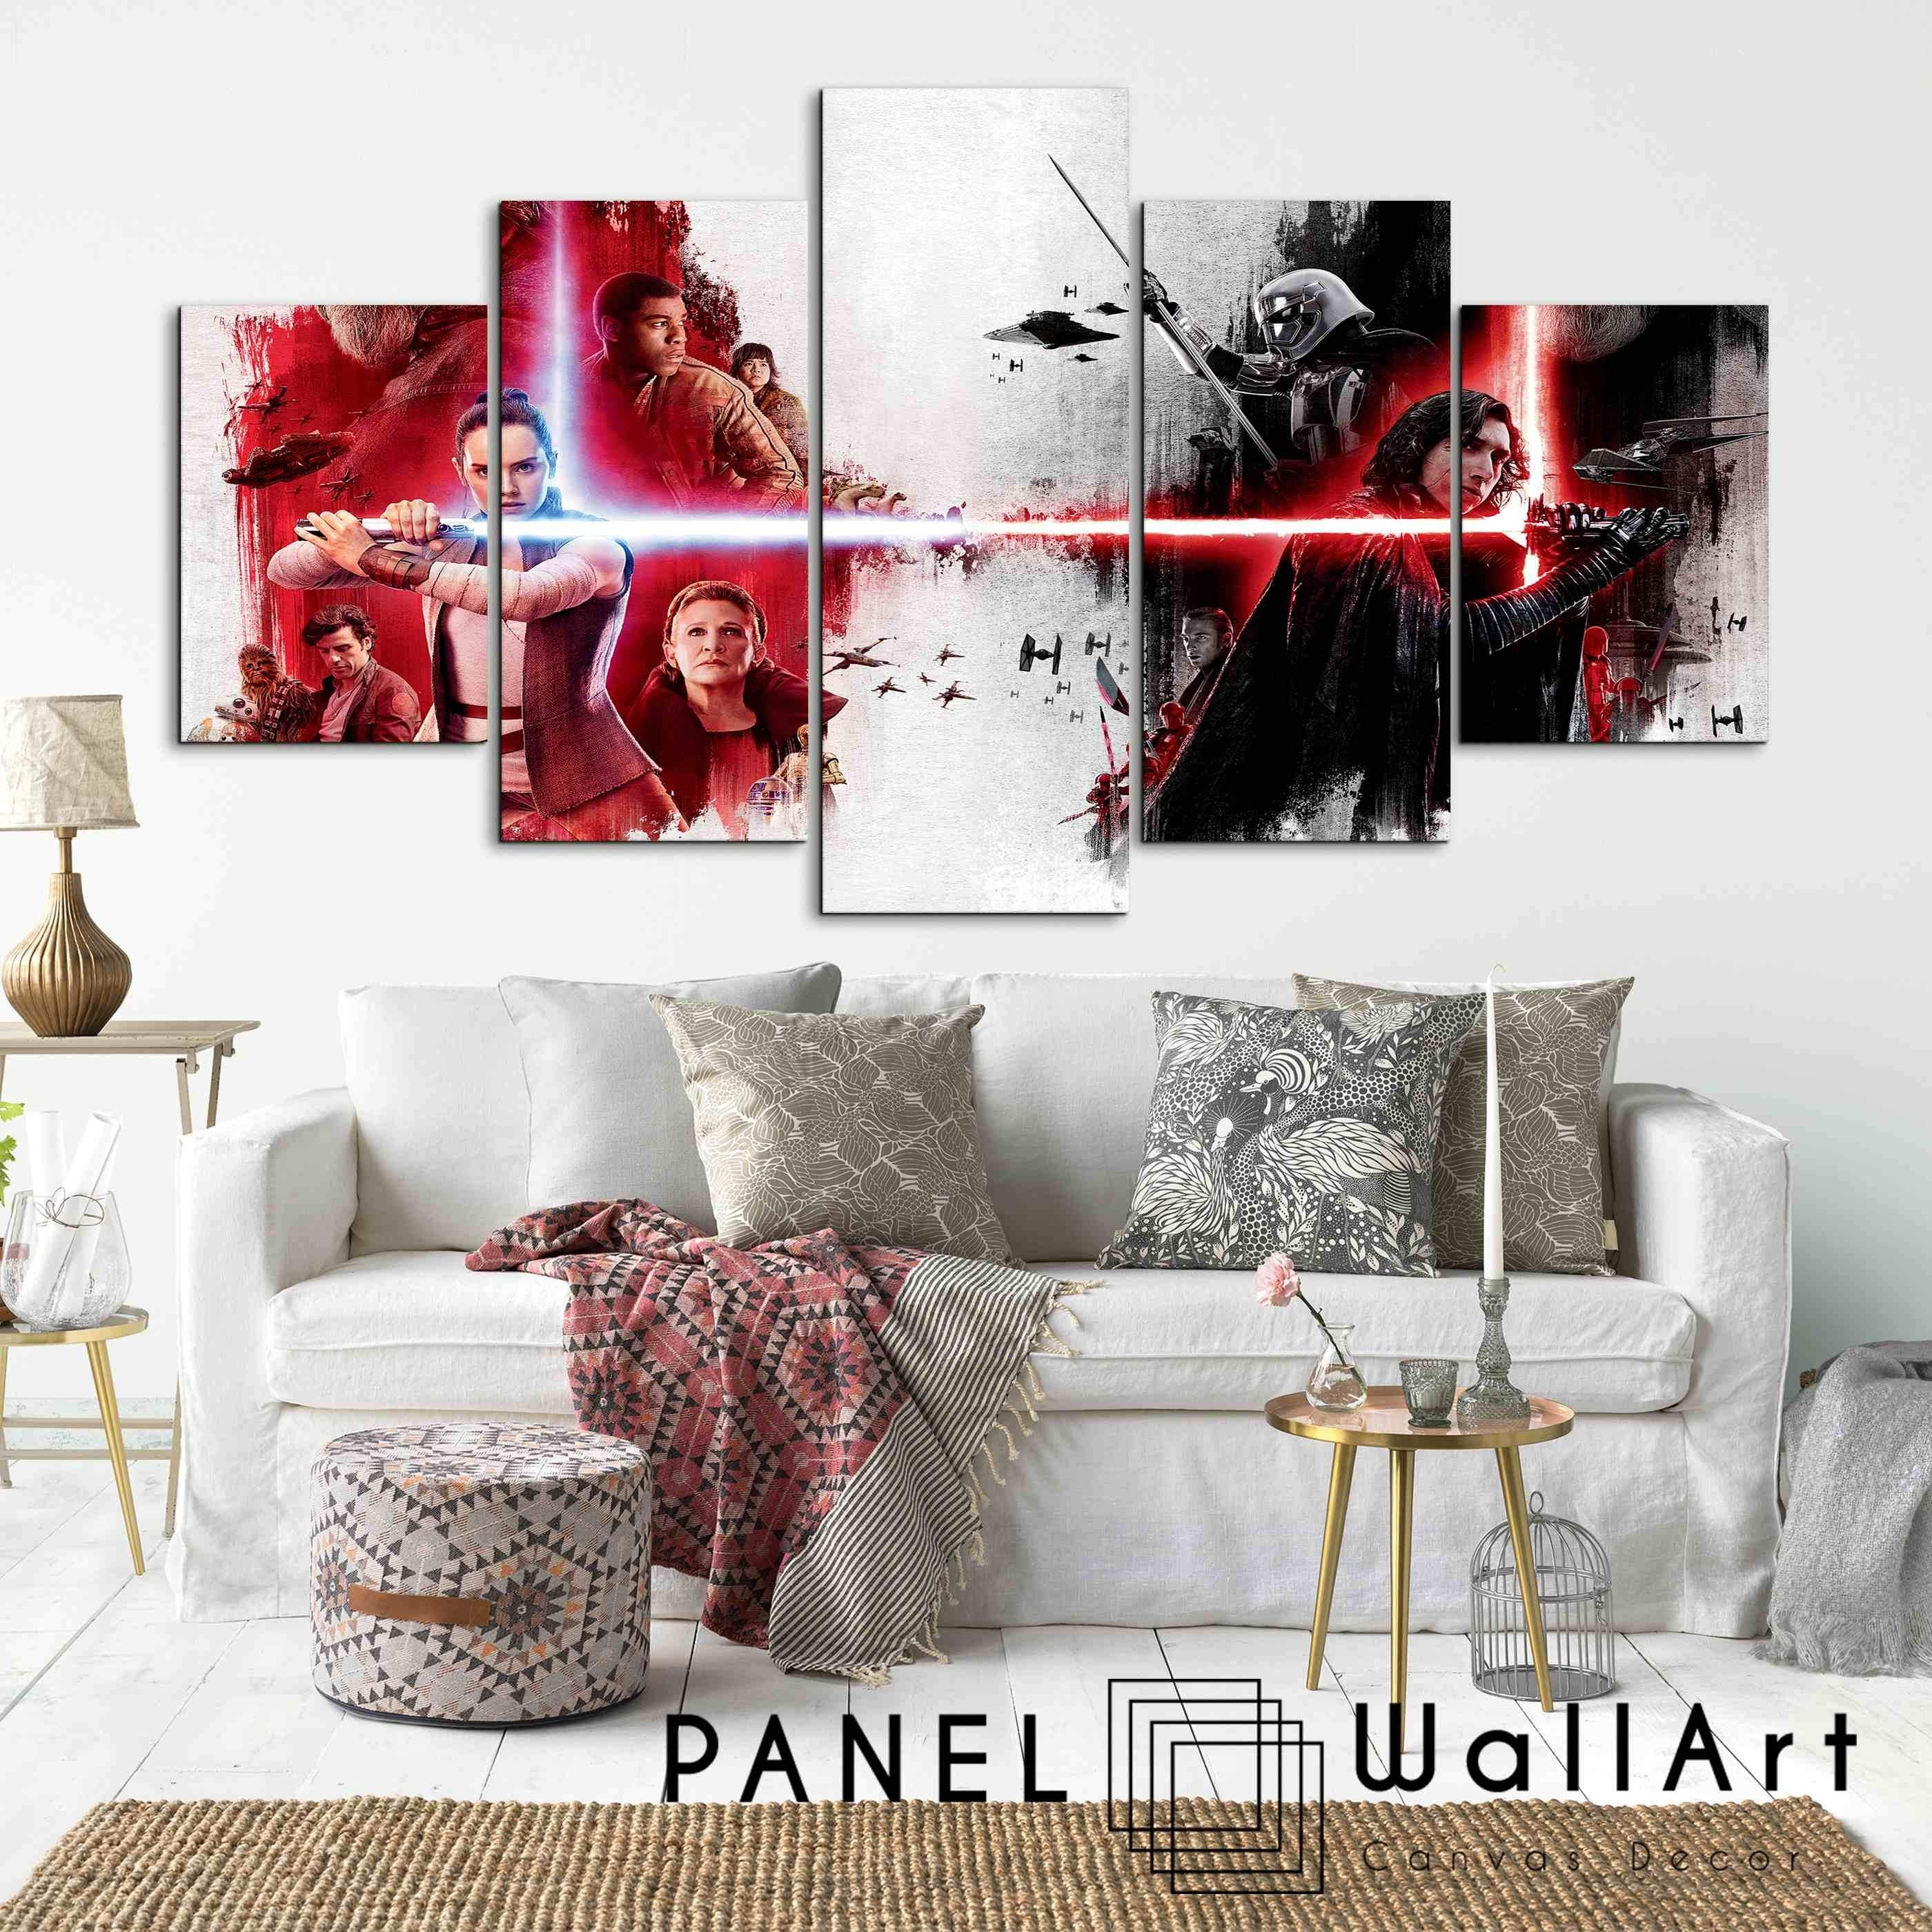 Star Wars The Last Jedi | Panel Wall Art Panelwallart Throughout Star Wars Wall Art (View 14 of 20)